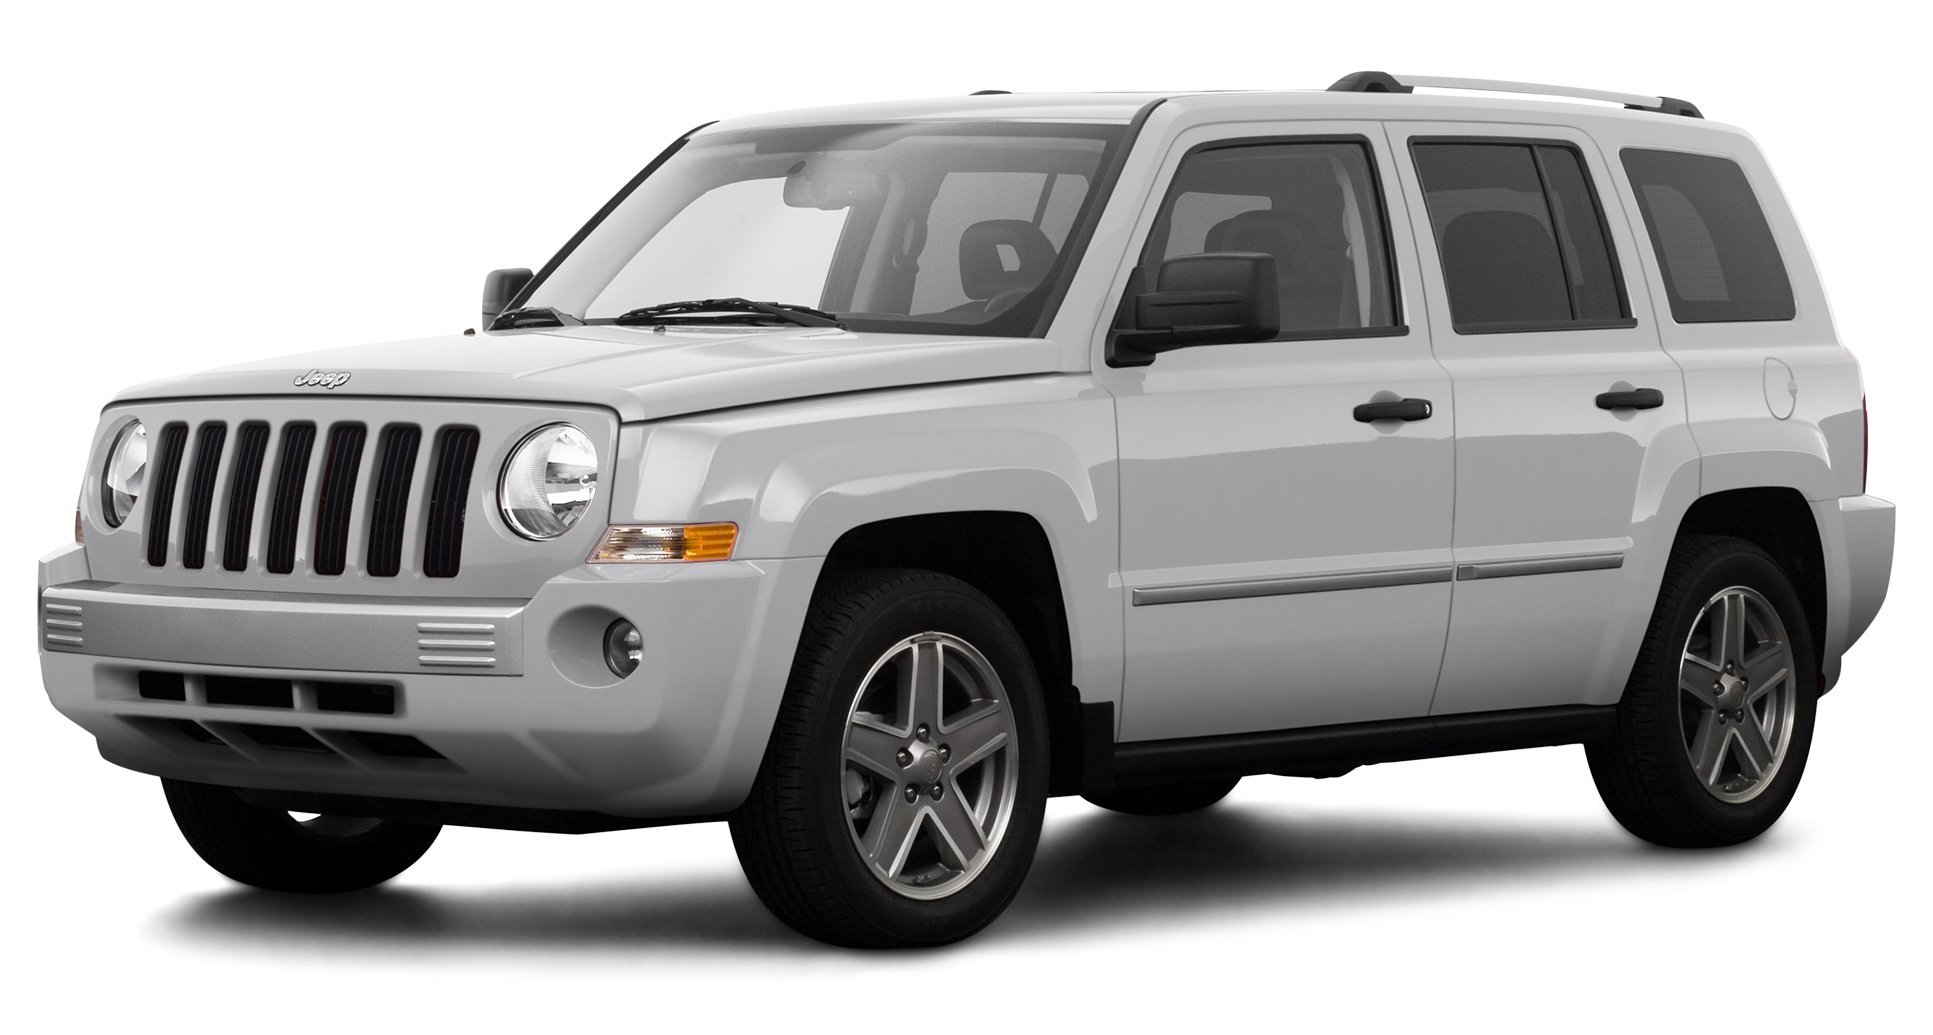 2008 Jeep Patriot Limited, 4 Wheel Drive 4 Door ...